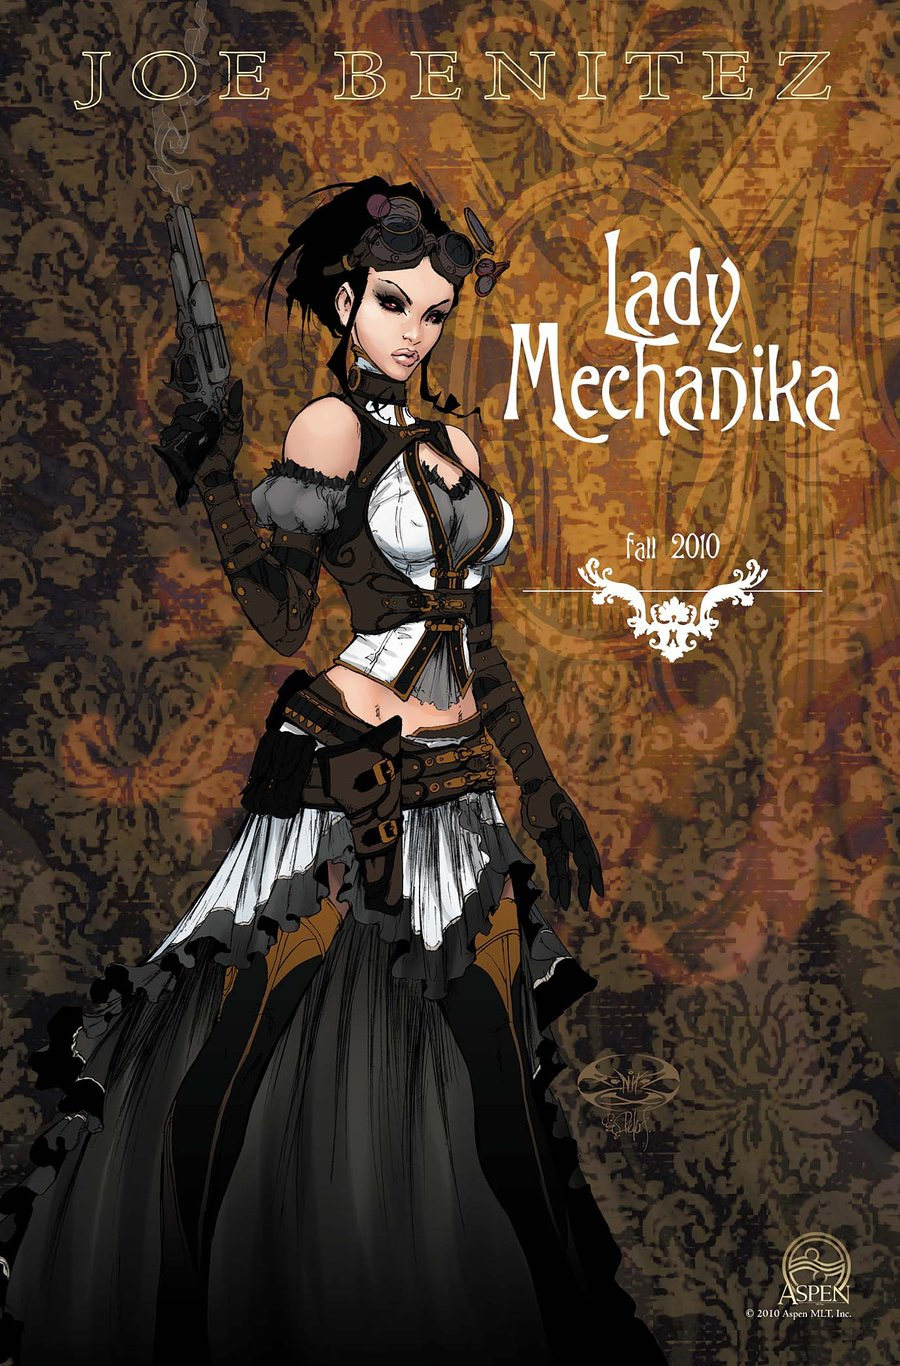 Lady_Mechanika_Ad_by_joebenitez